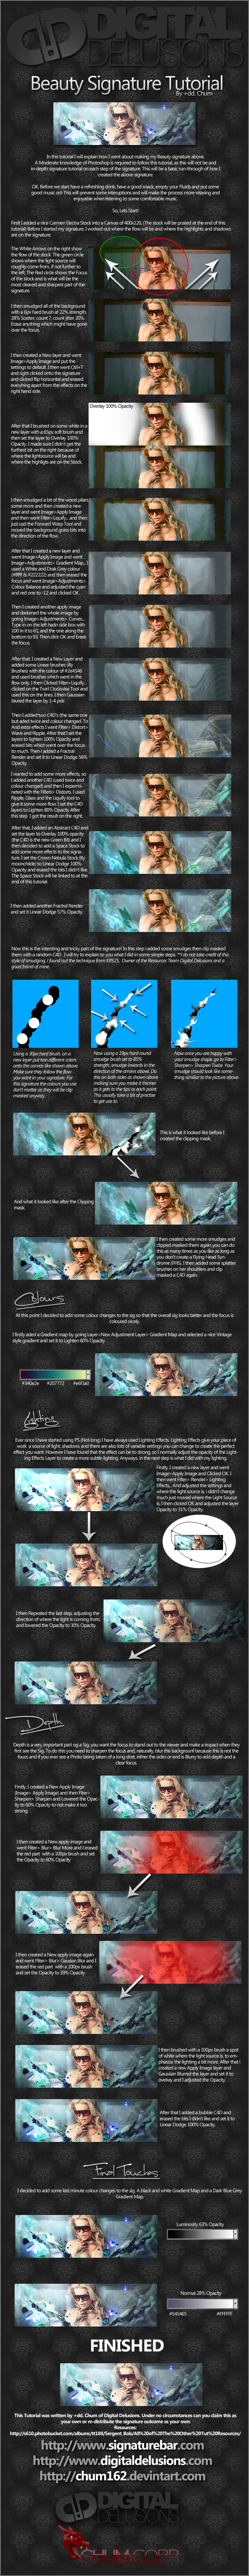 Carmen Electra SIgn Tut Beauty_Signature_Tutorial_by_Chum162